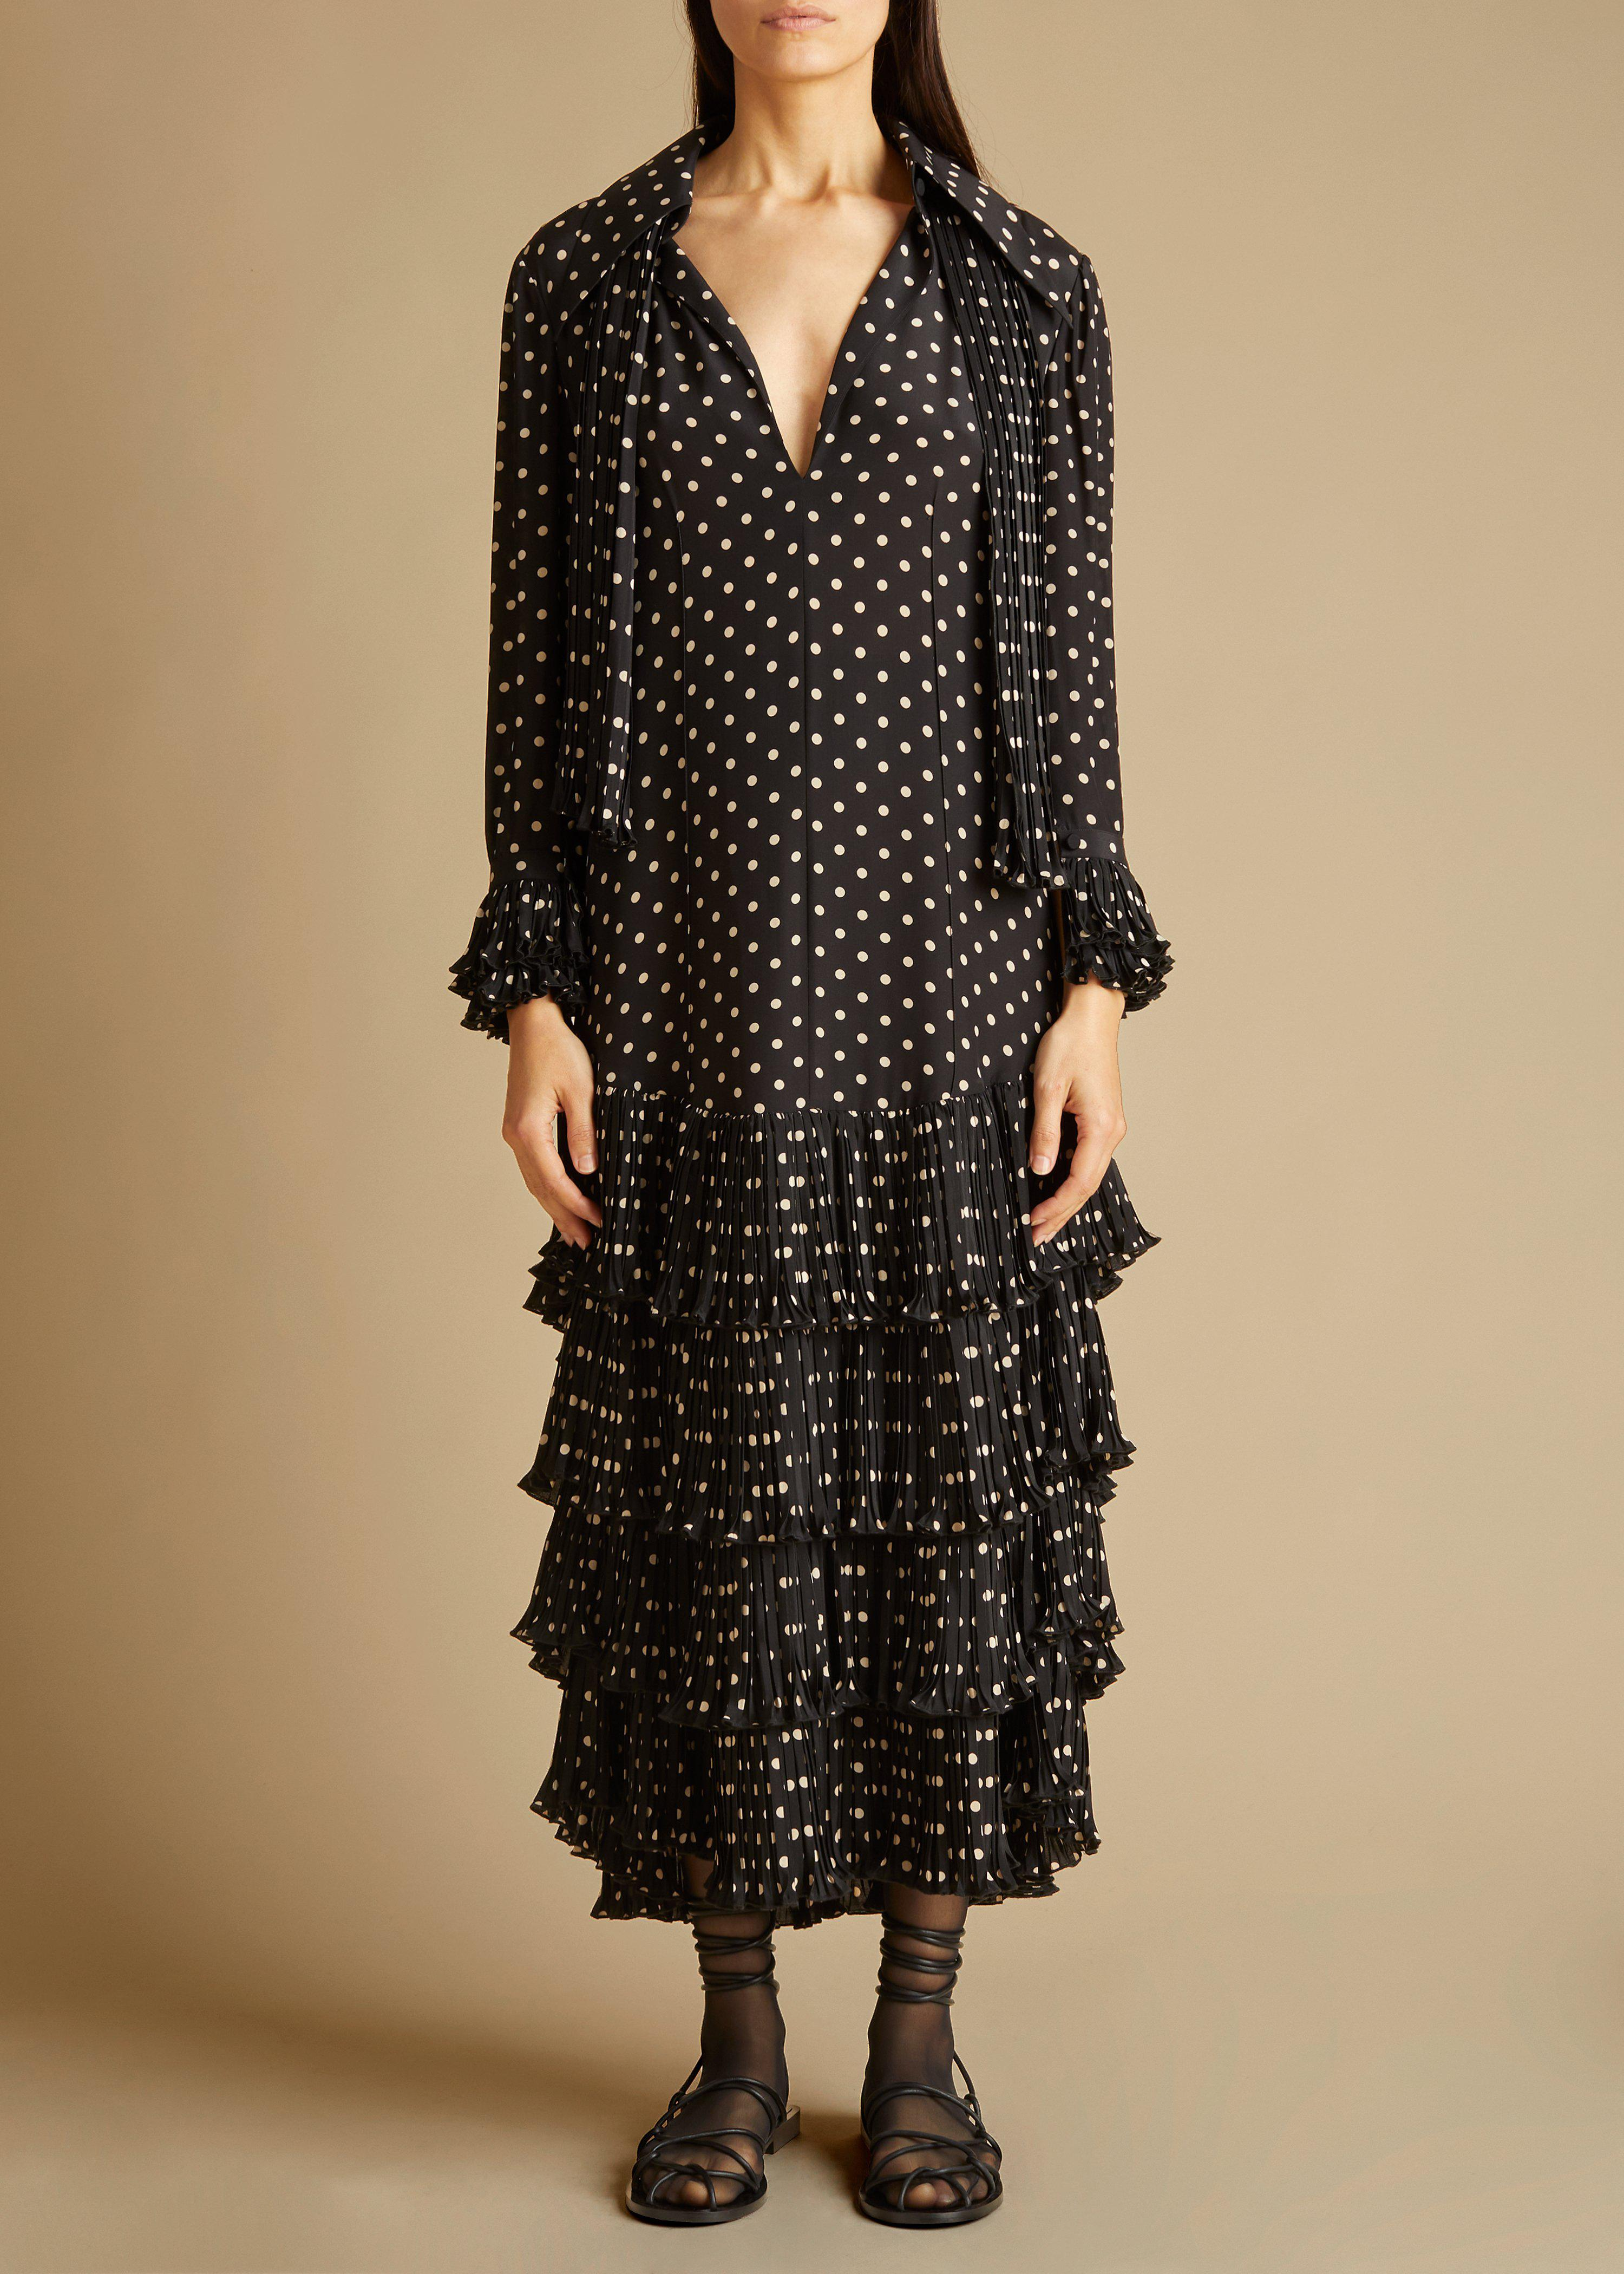 The Dolly Dress in Black and Creme Dot 1